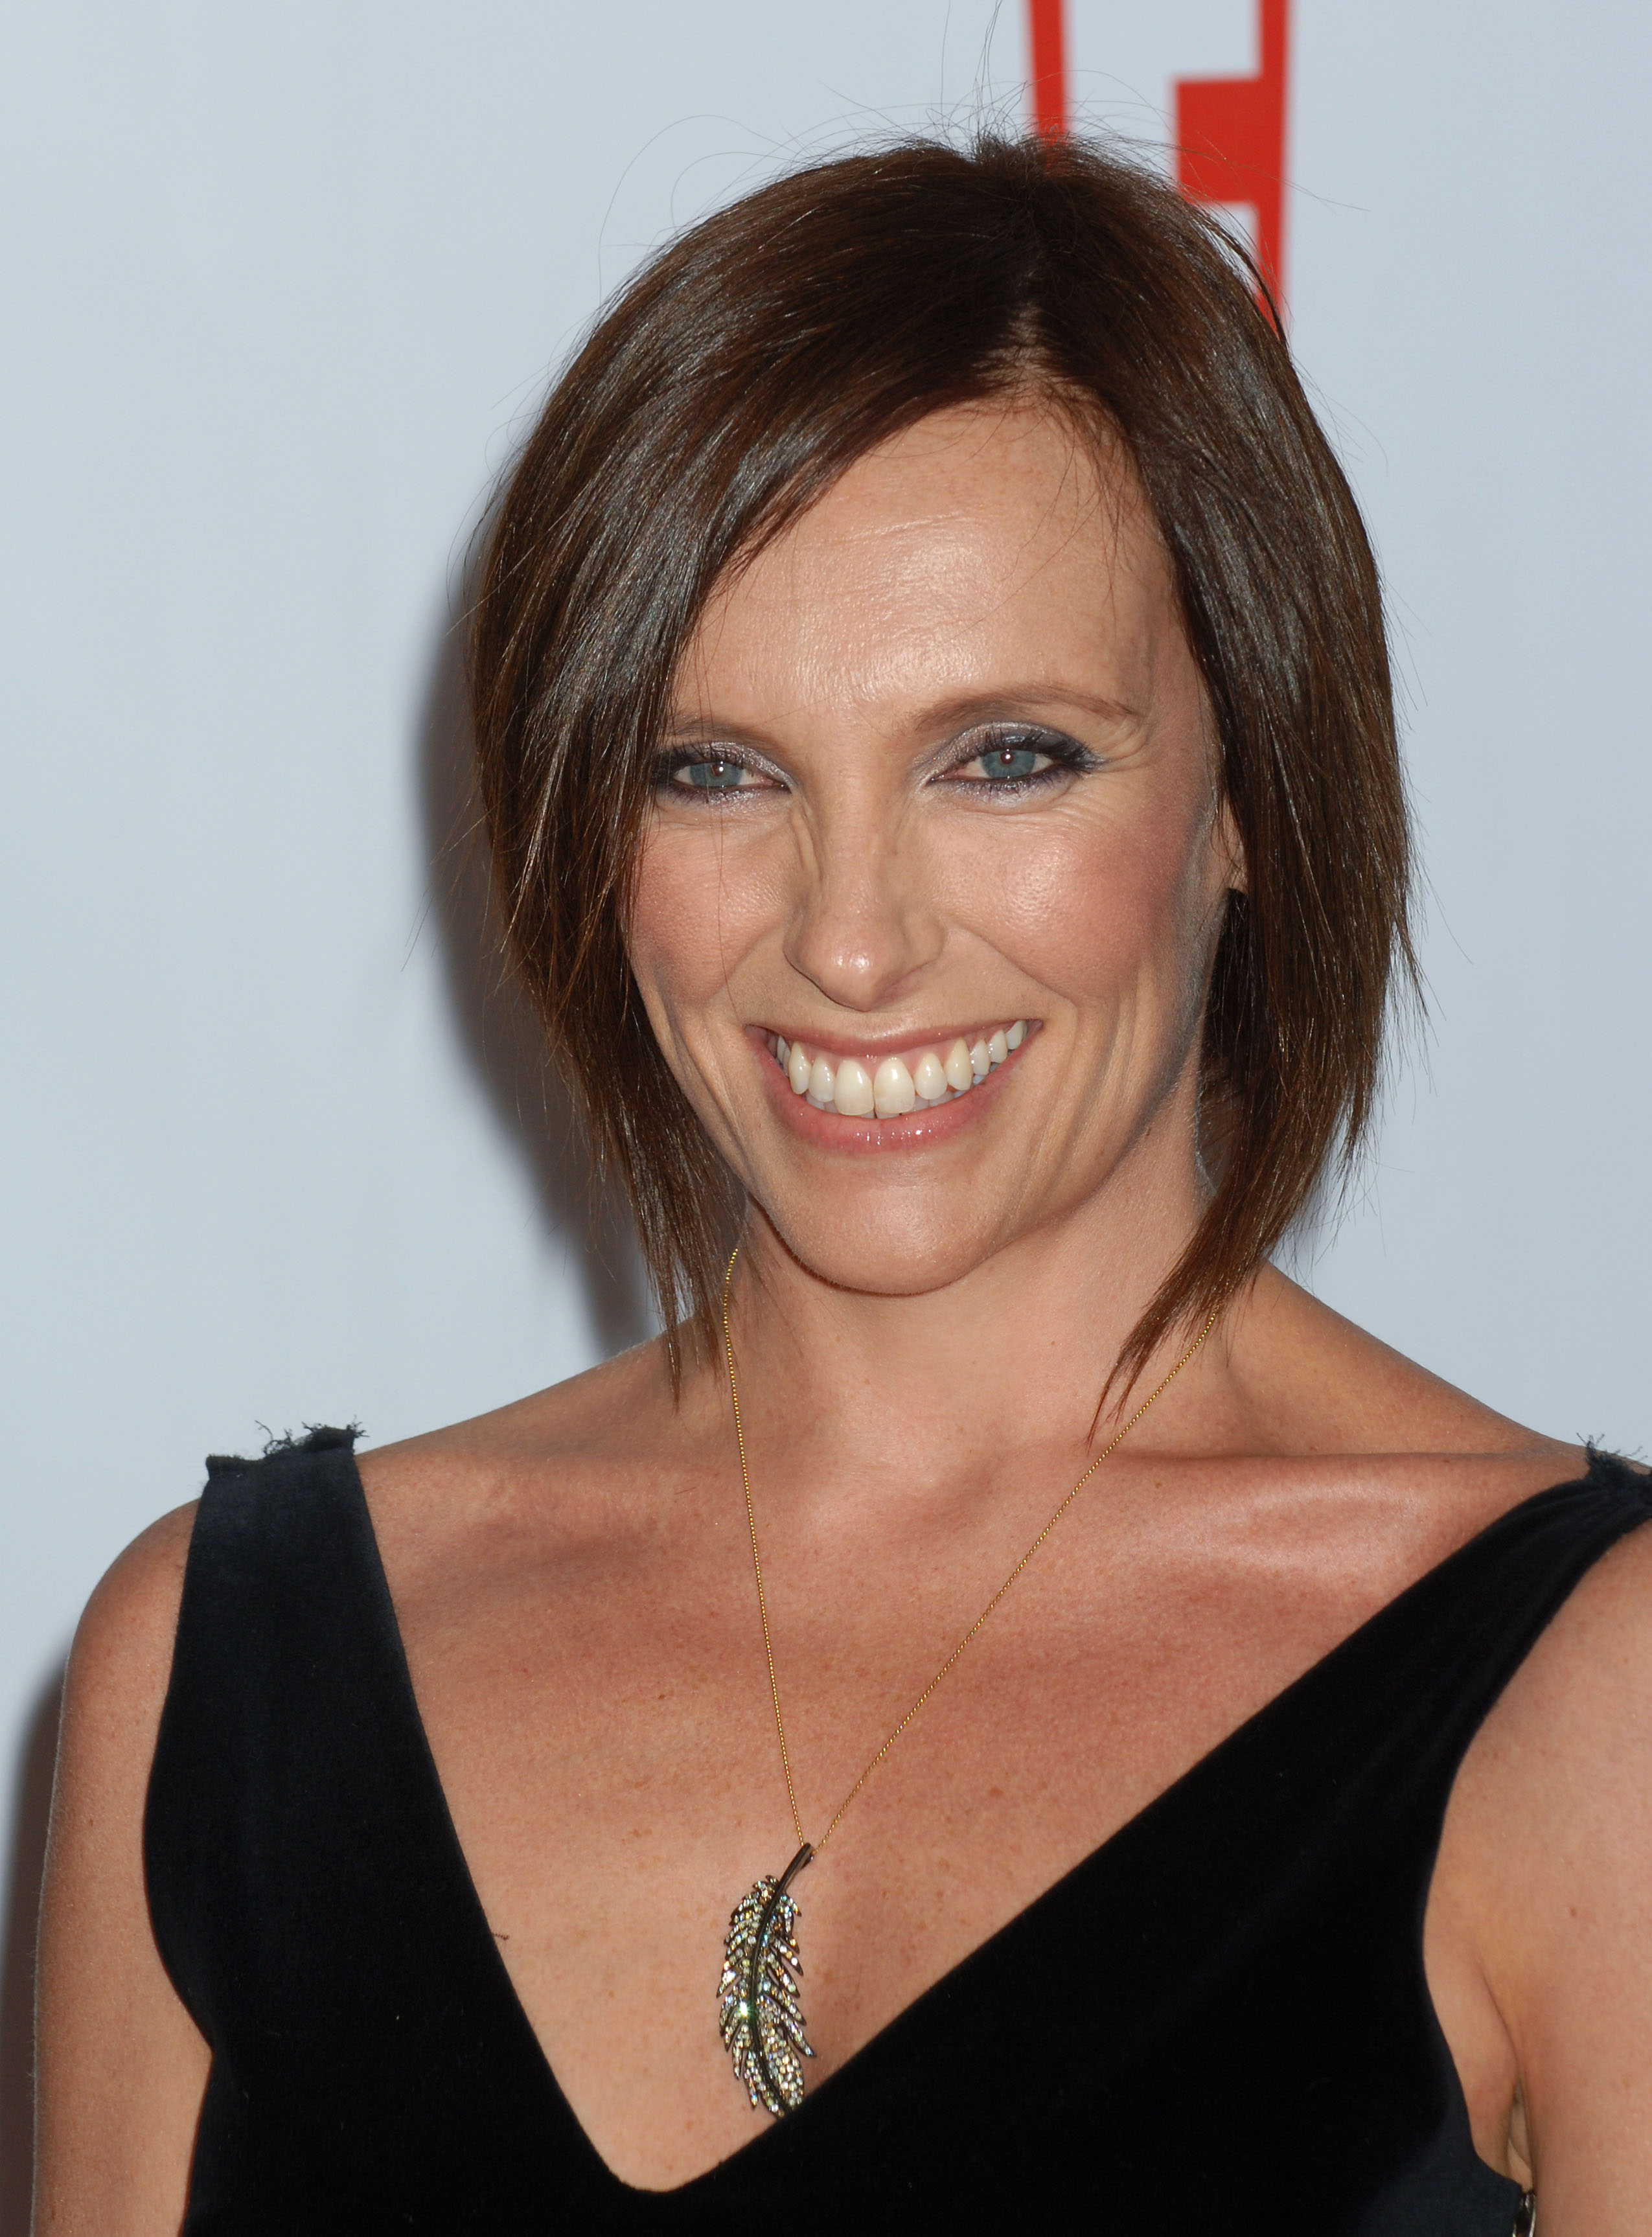 Toni Collette photo, pics, wallpaper - photo #